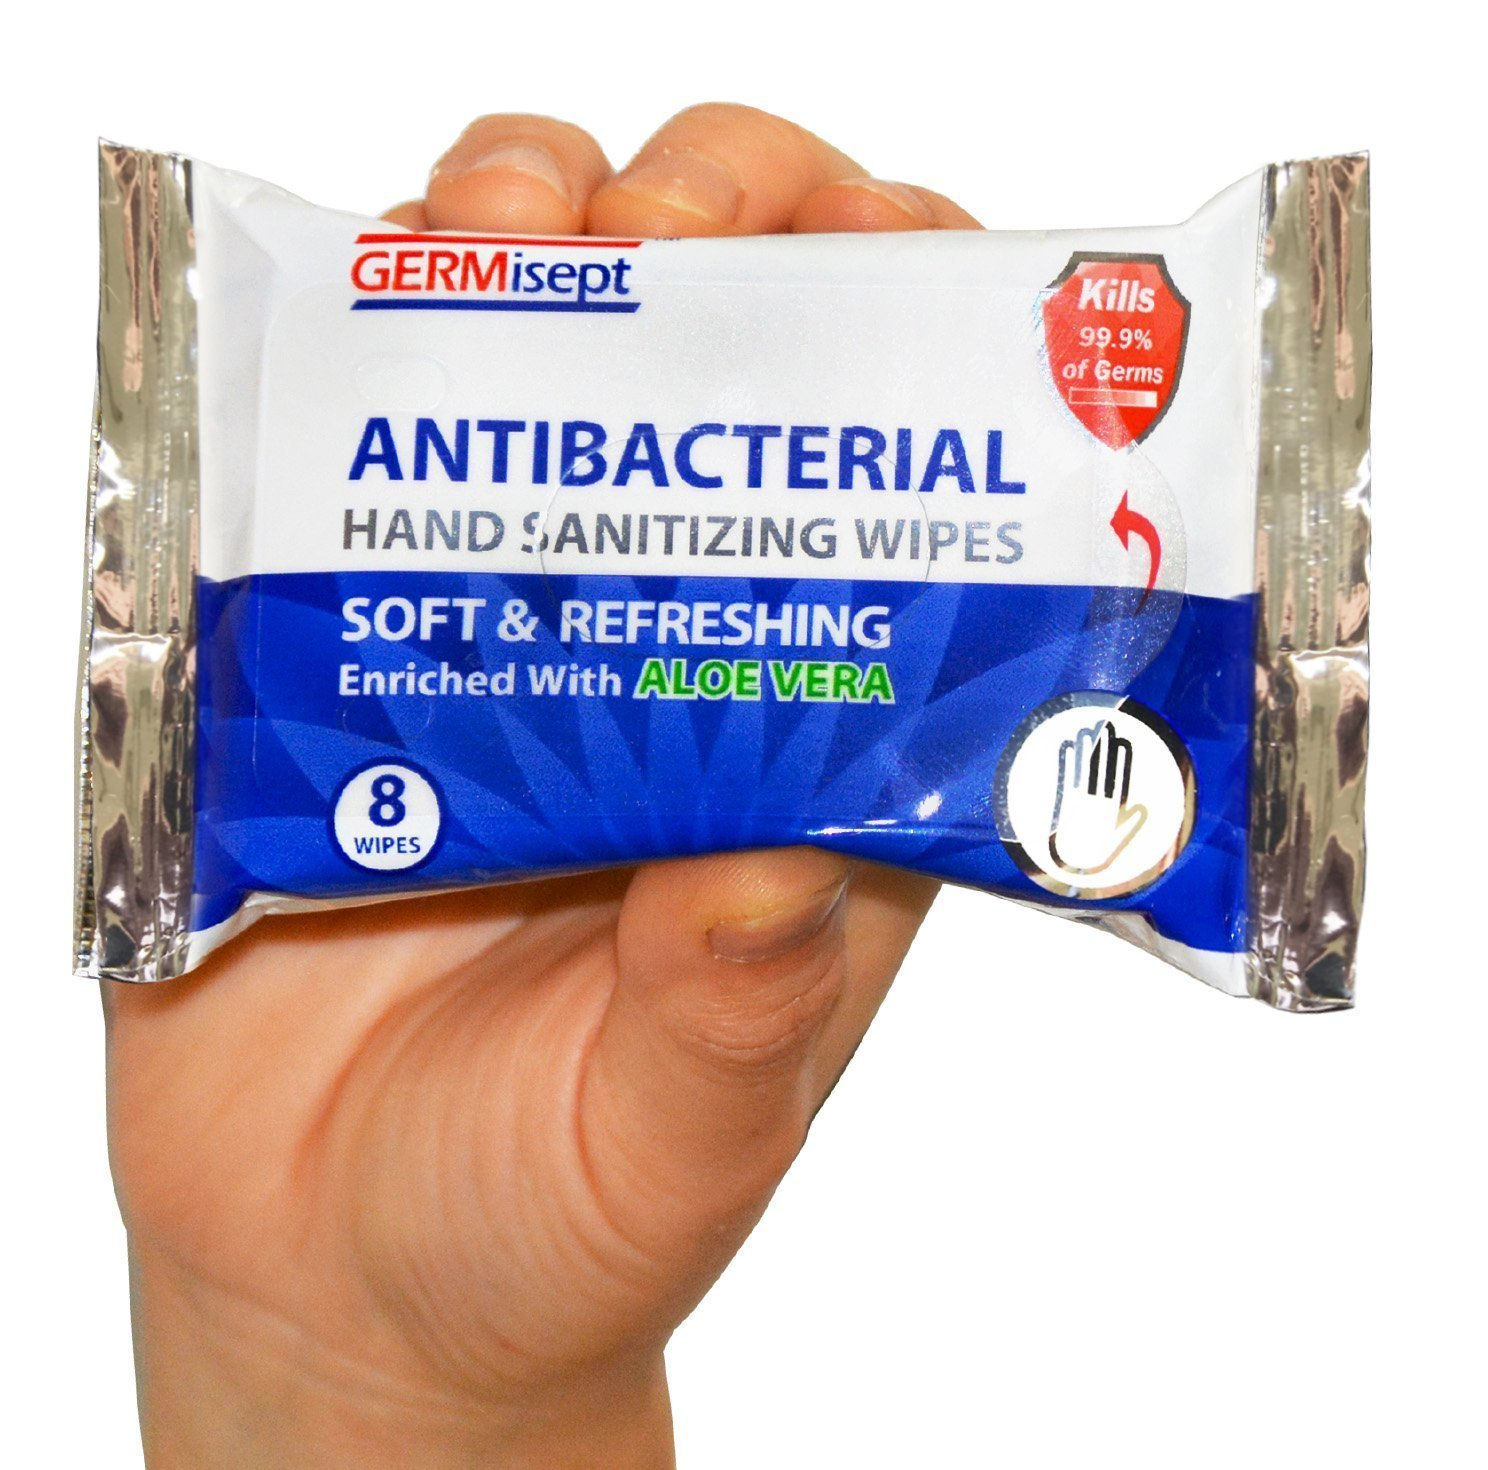 Germisept, Antibacterial Hand Sanitizing Wipe handy portable & convenient (8 Count pack of 12 packs = 96 wipes)